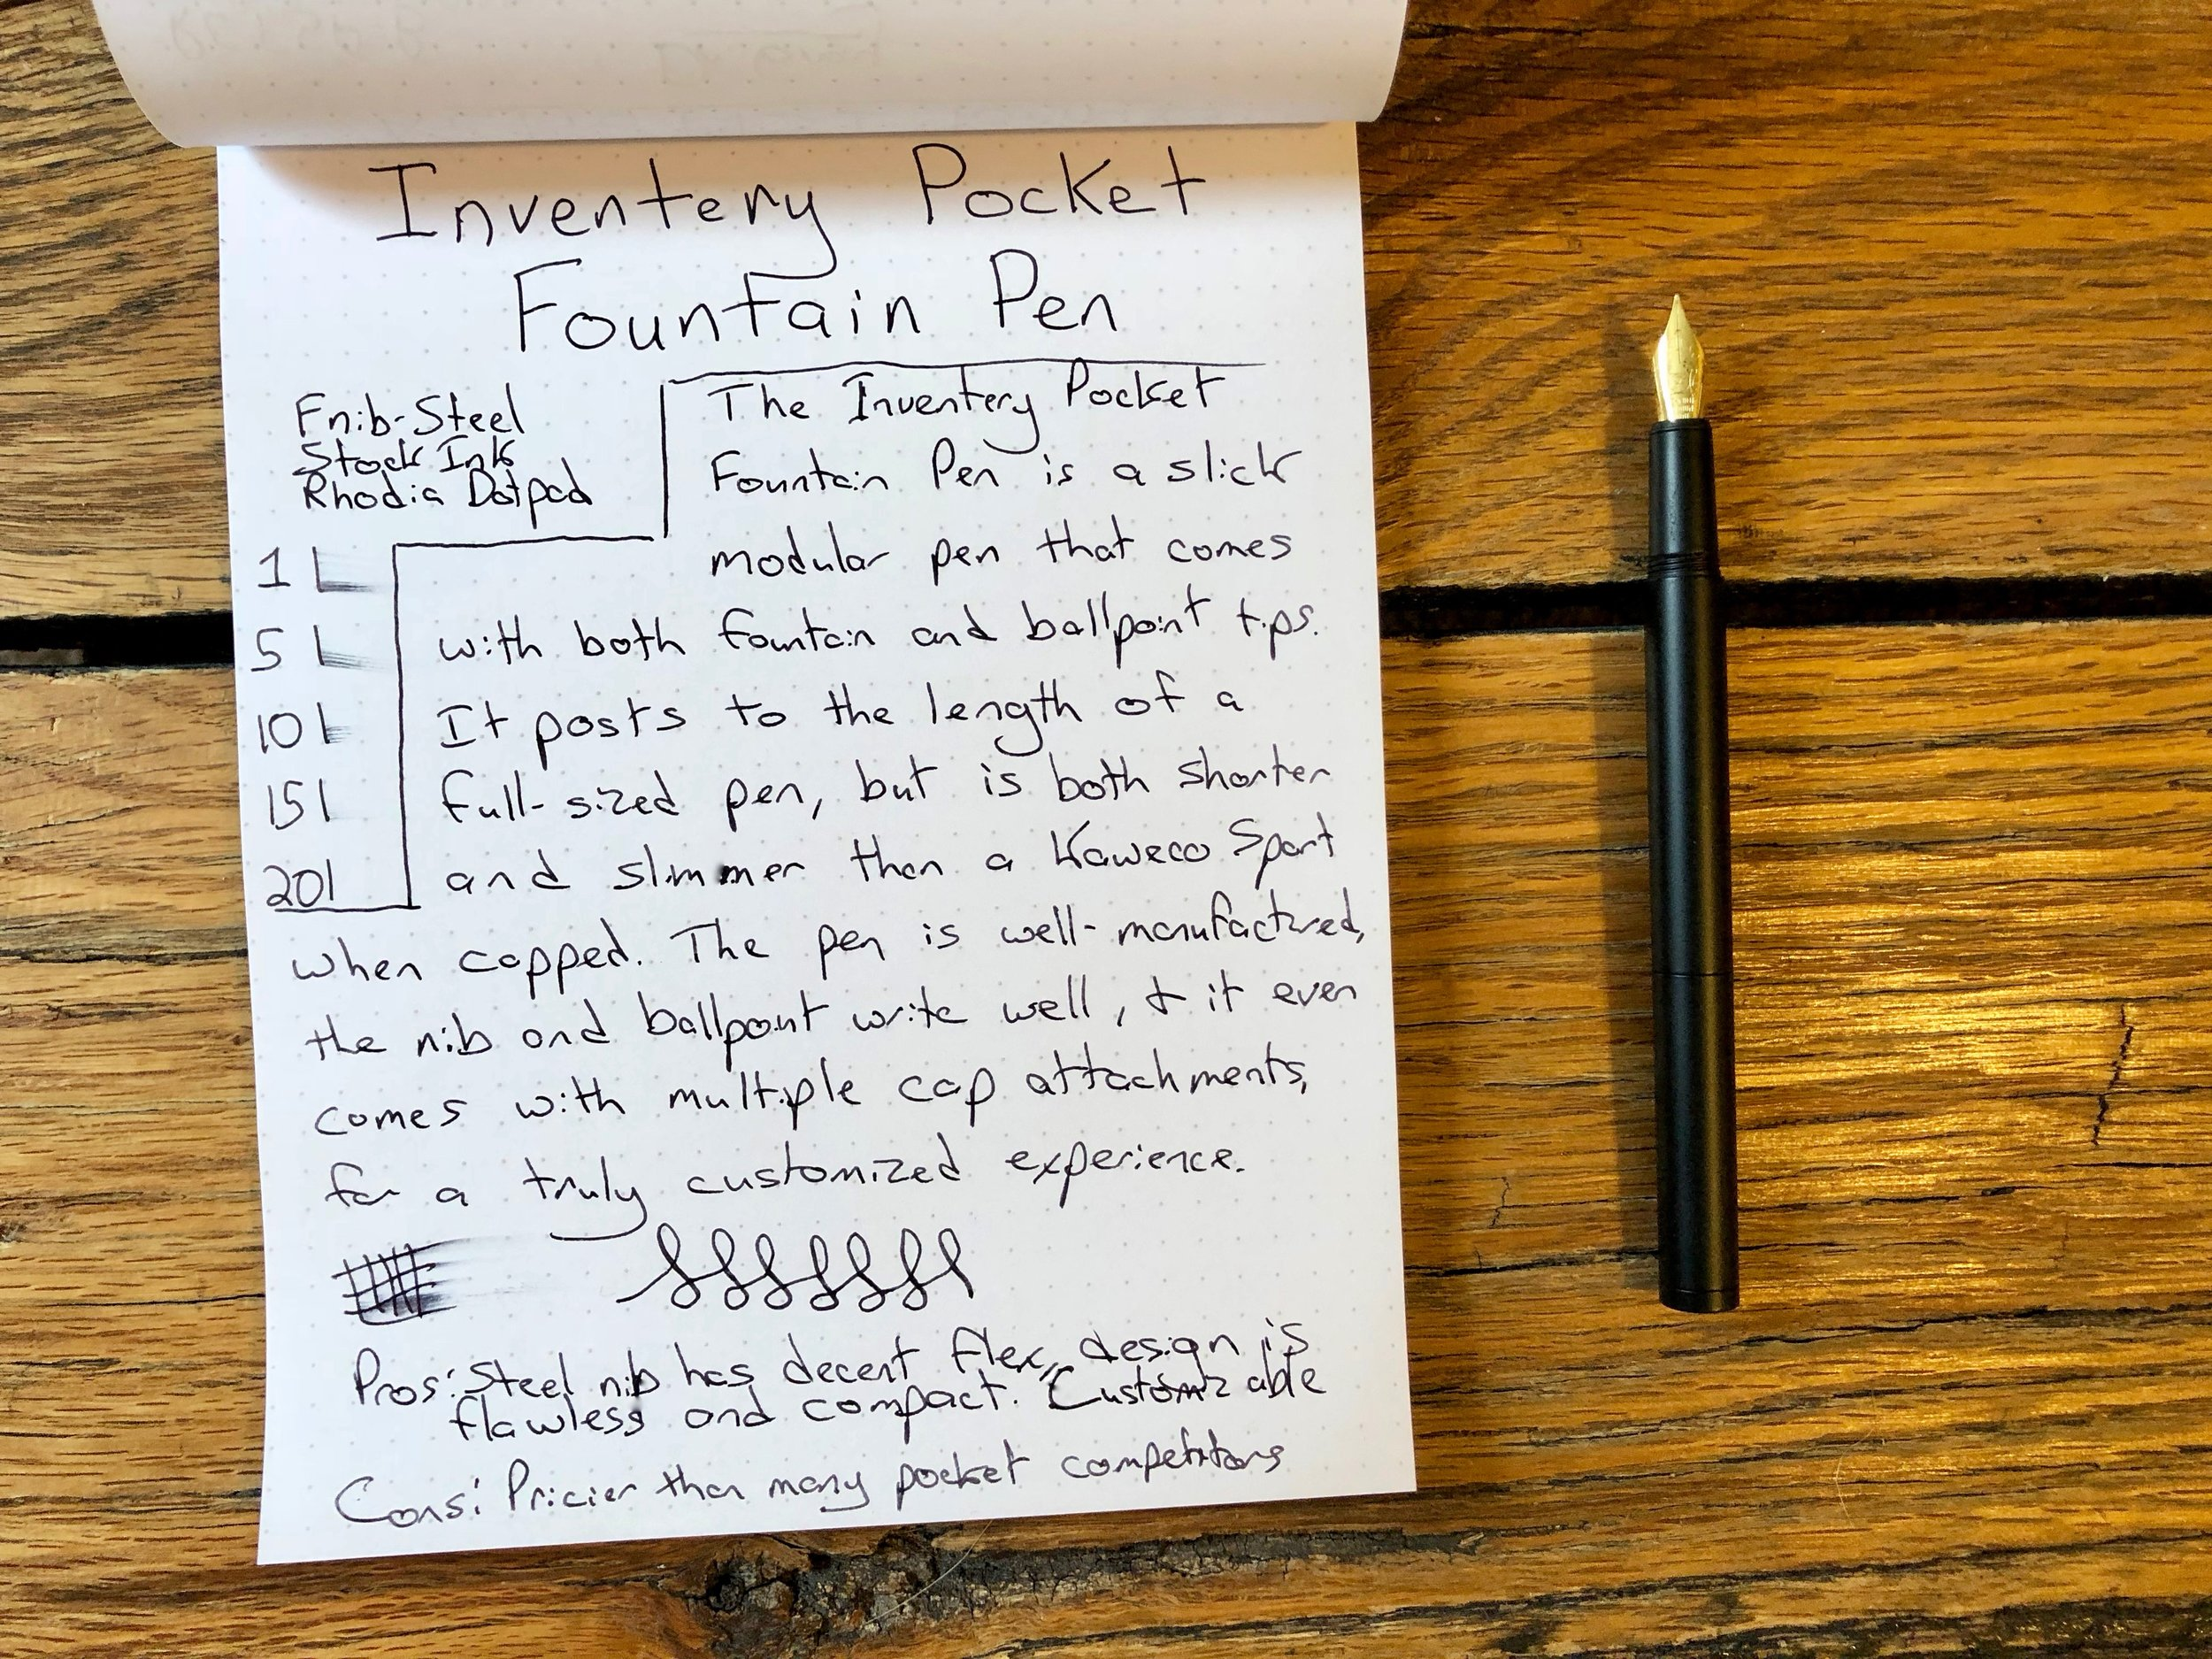 Inventery Pocket Fountain Pen Review Handwritten Review.jpg